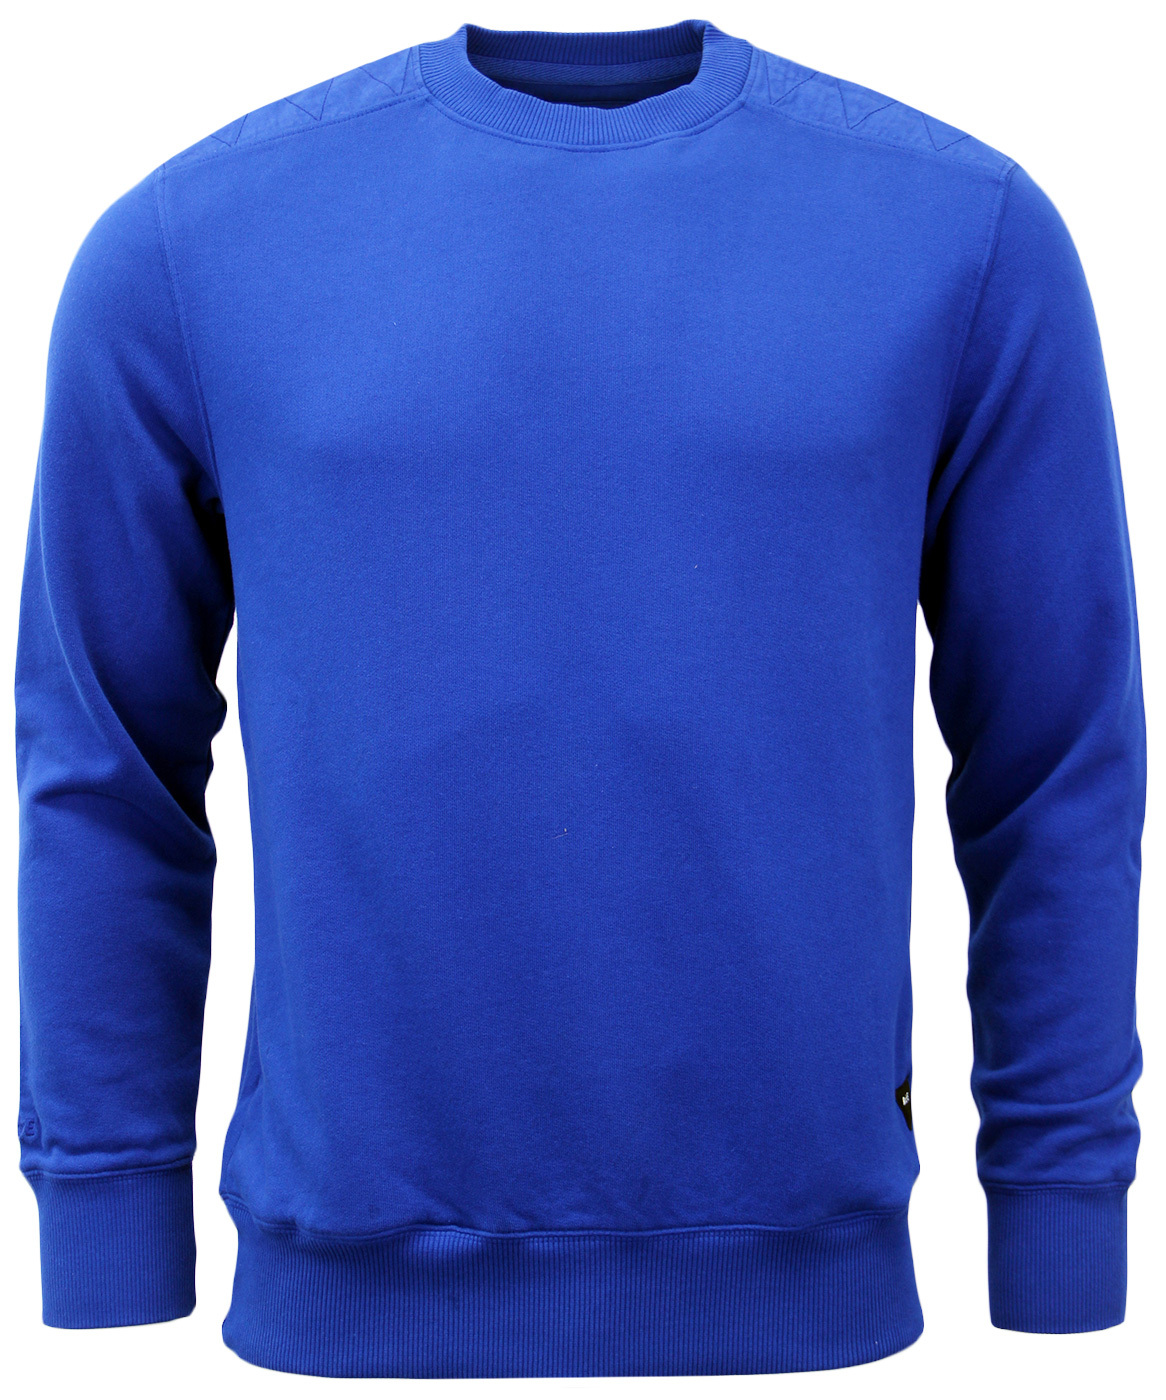 Friston REALM & EMPIRE Shoulder Panel Crew Jumper